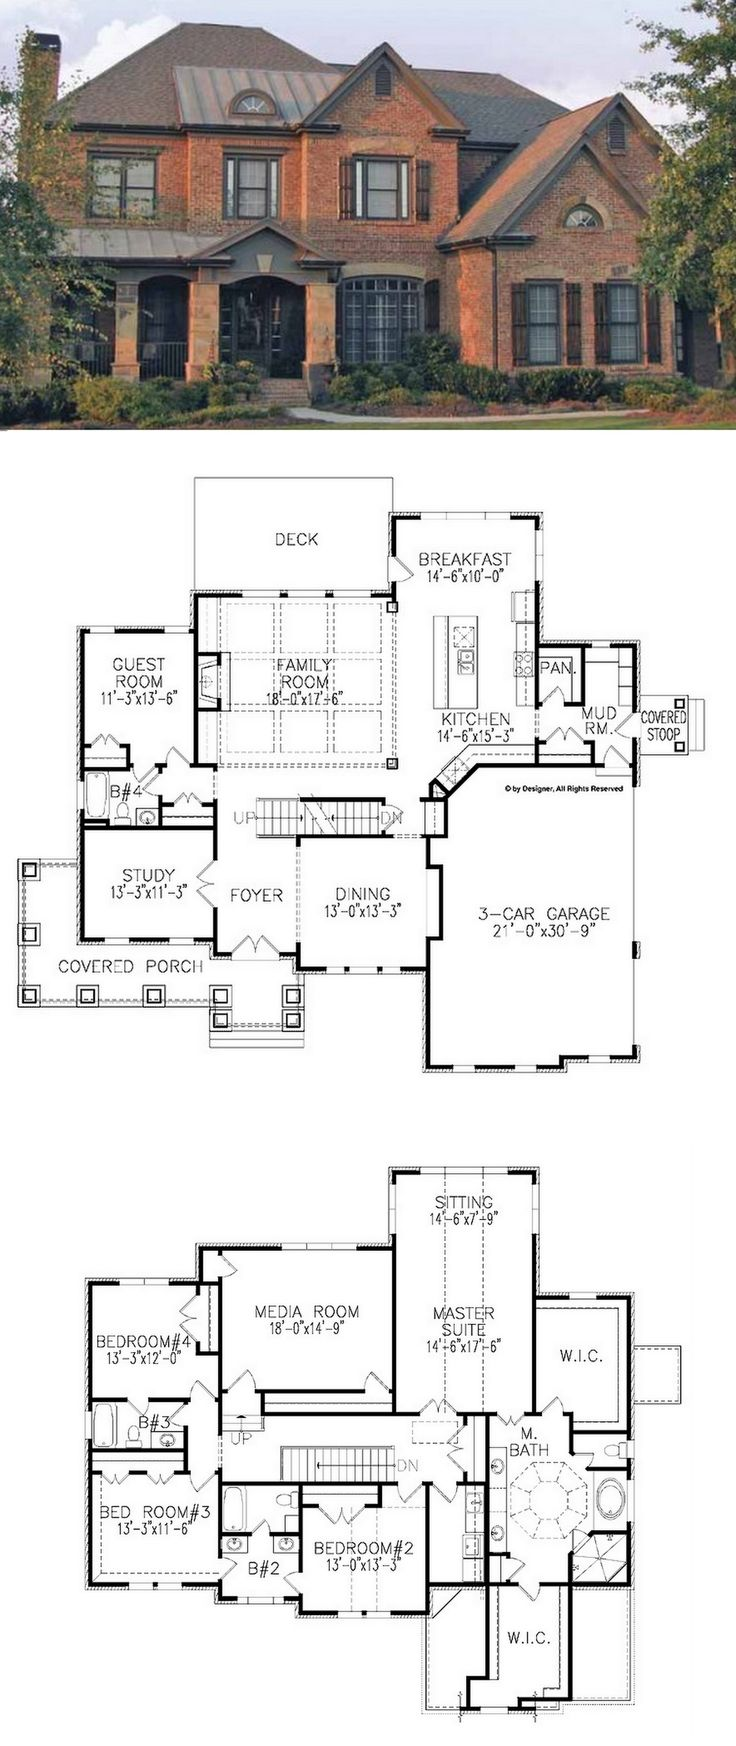 Best 25 5 bedroom house plans ideas only on pinterest 4 for House blueprints